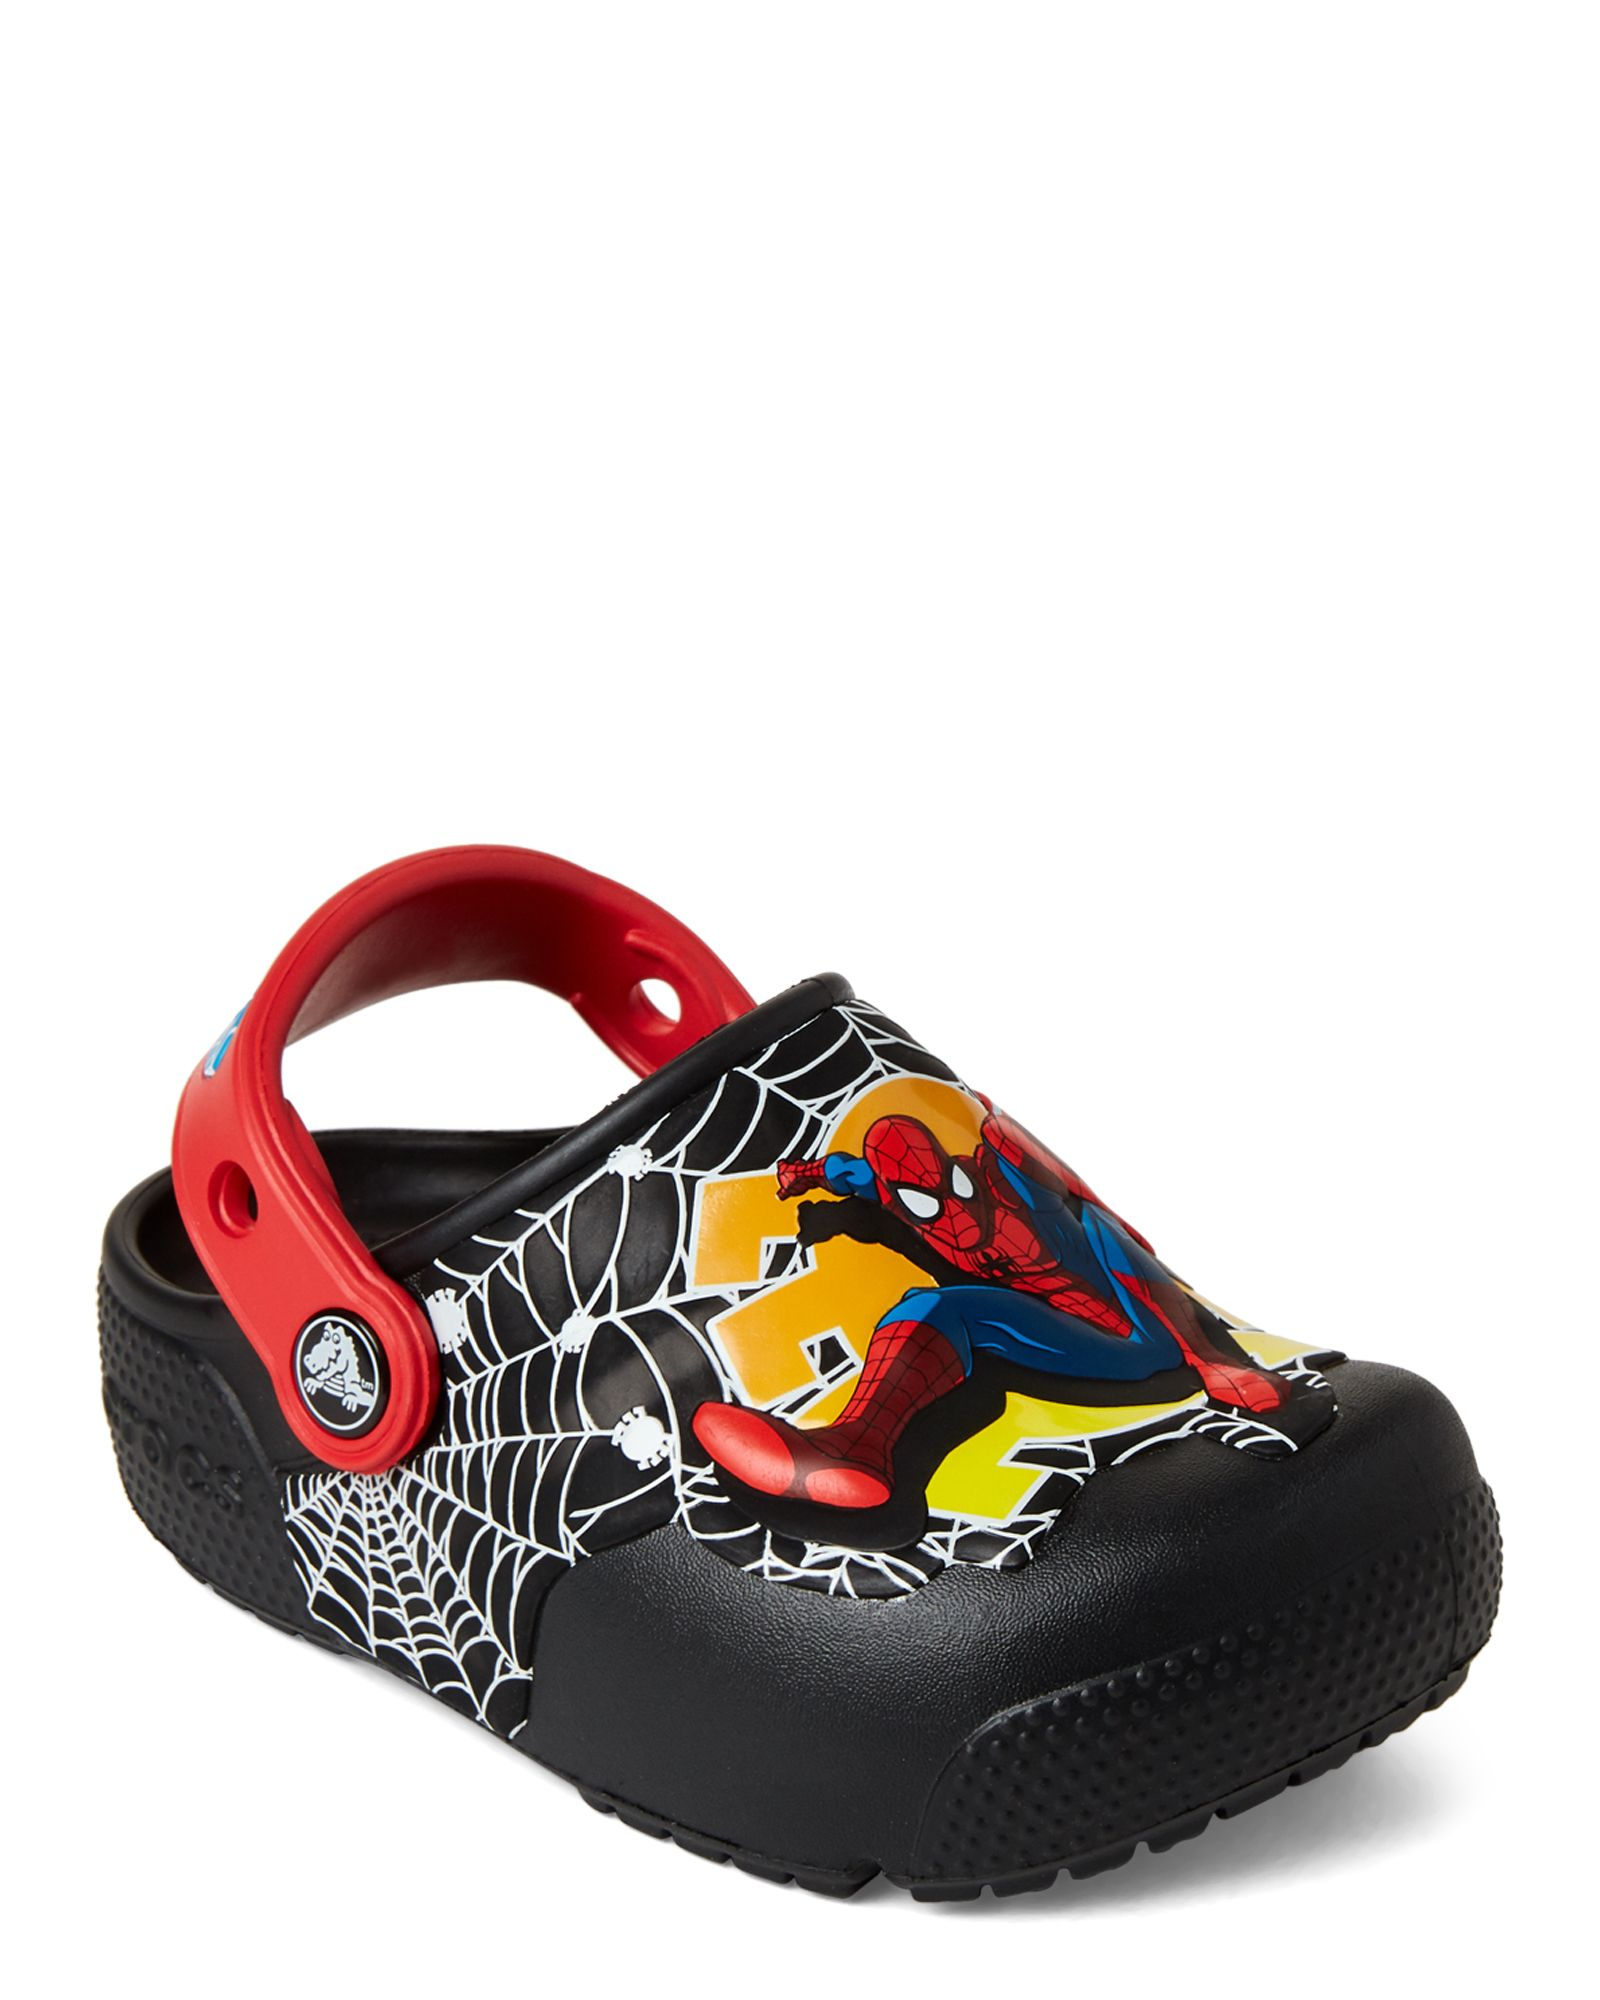 477a6a16c Infant/Toddler Boys) Black Fun Lab Spider-Man Light-Up Clogs in 2019 ...